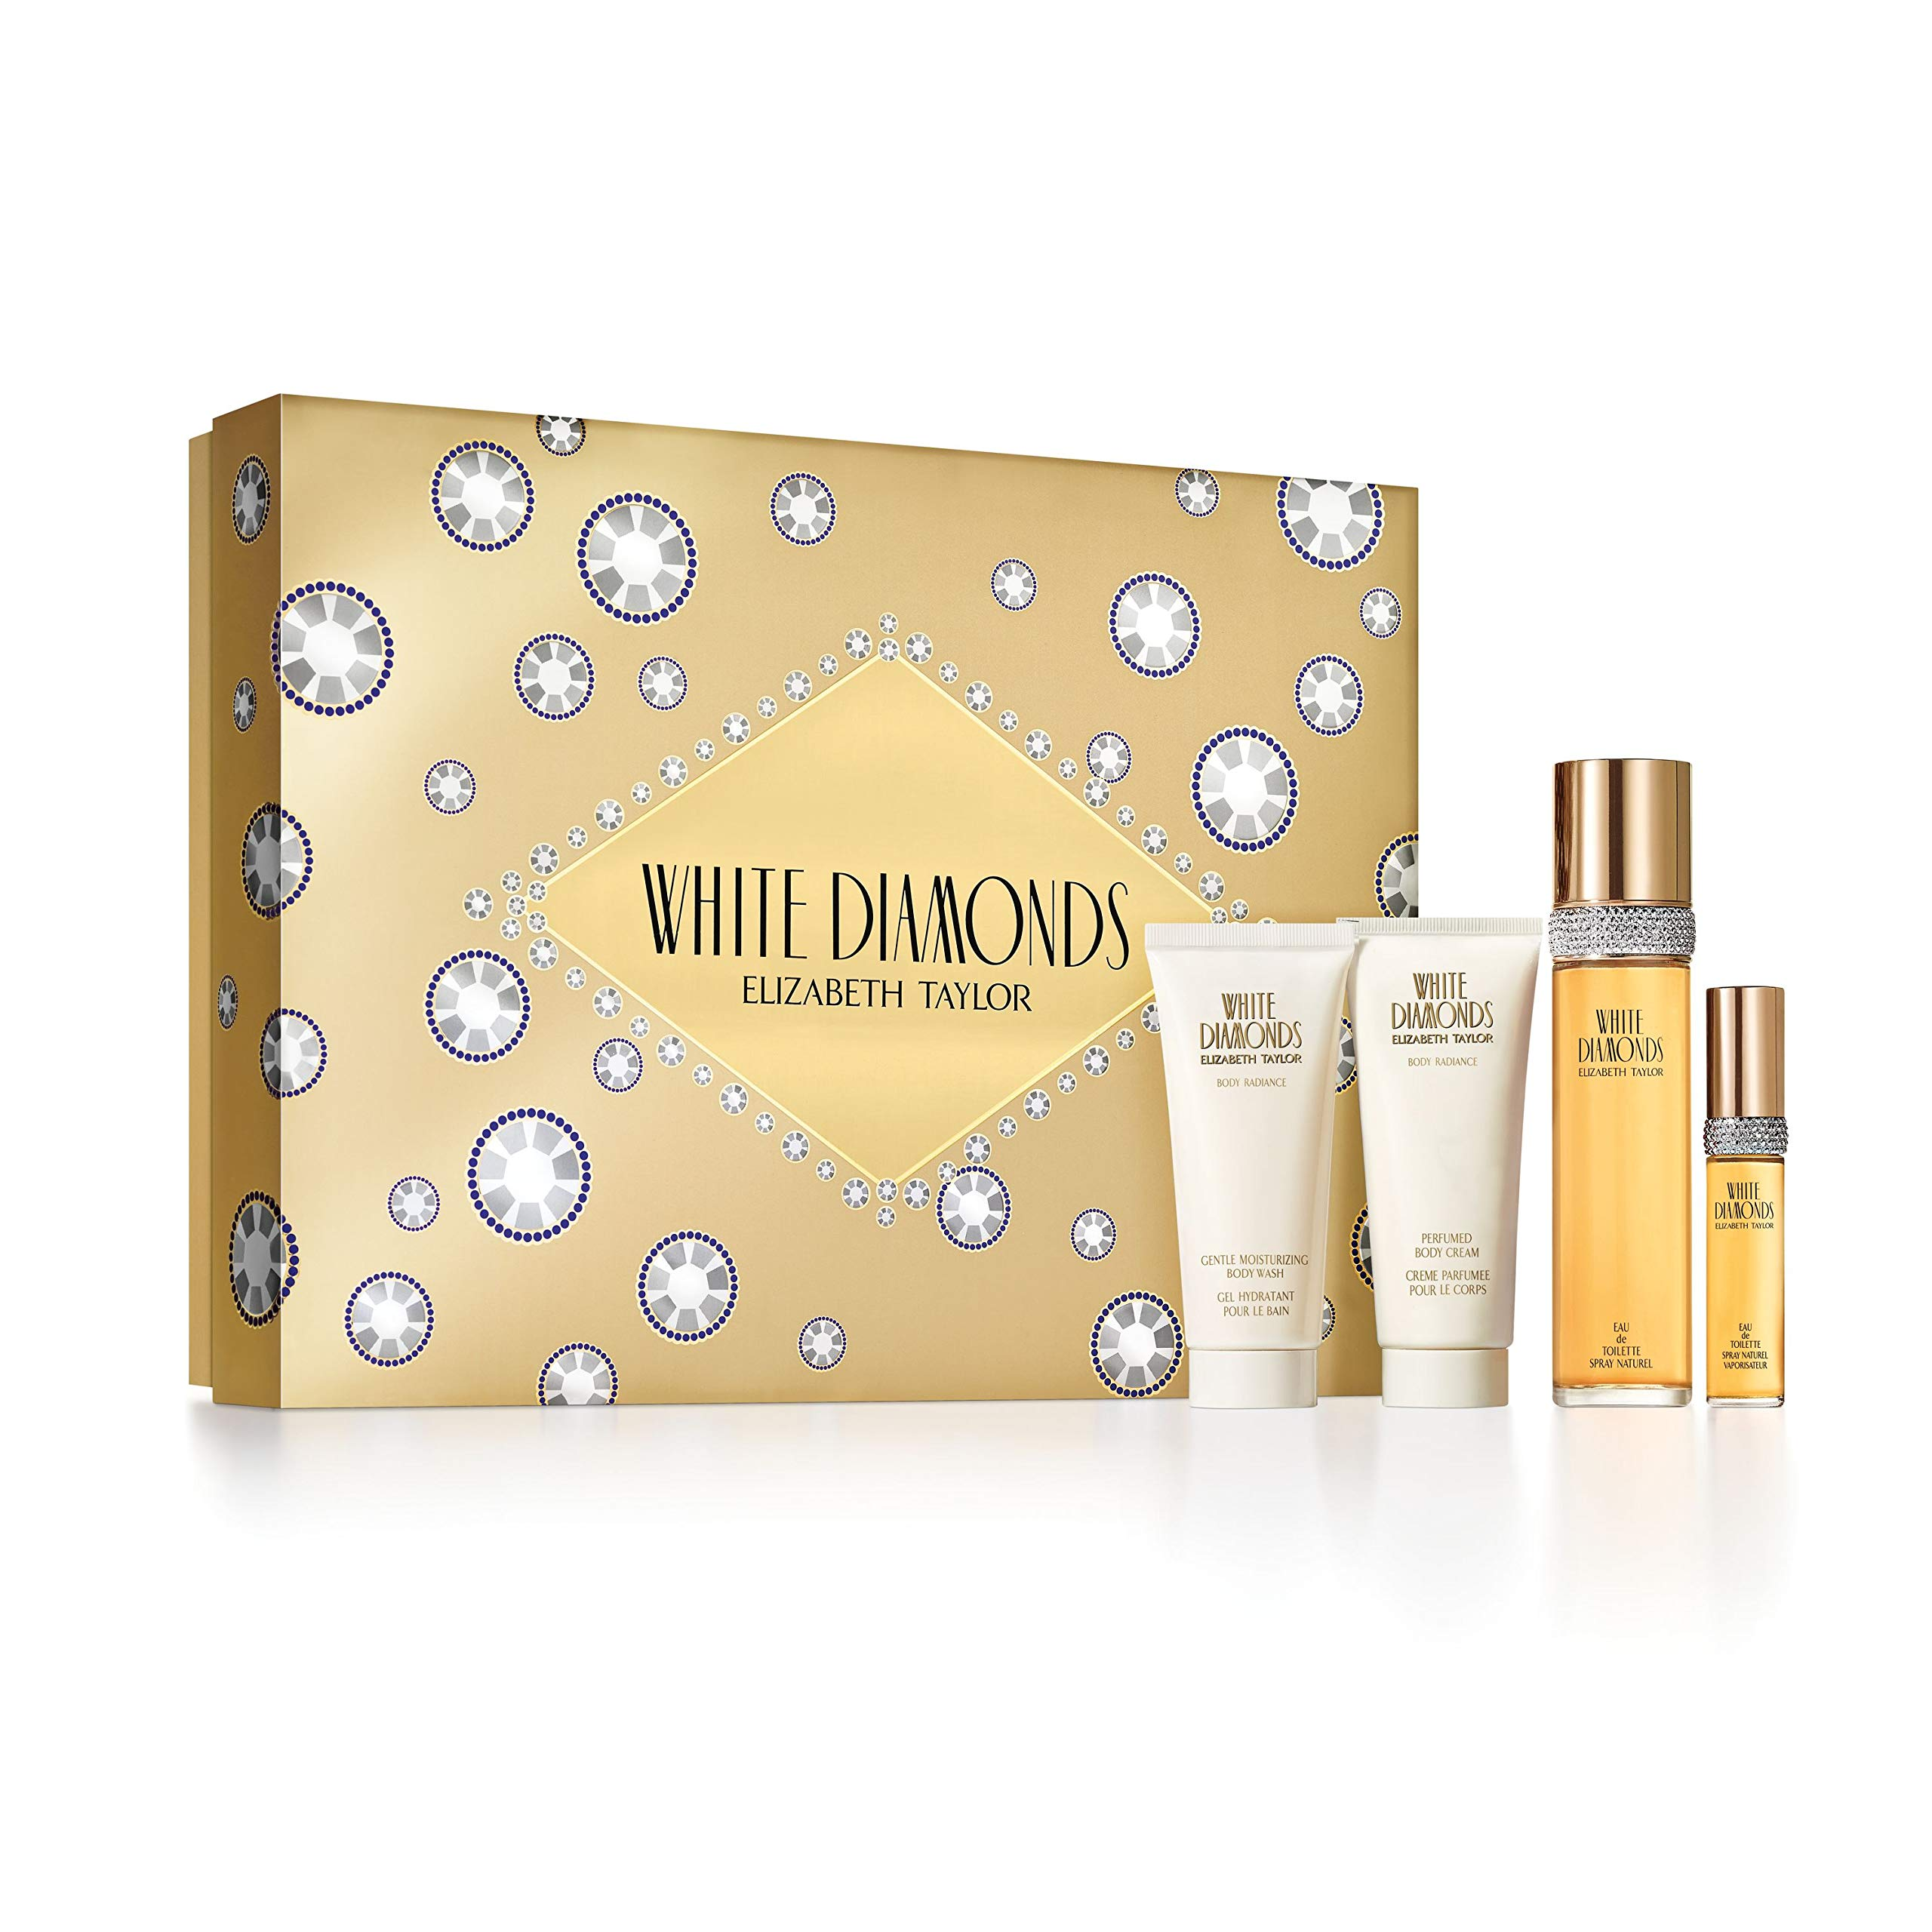 Elizabeth Taylor Ladies Gift Set (Includes 3.3oz Eau De Parfume, Body Lotion, Body Wash, Eau De Toilette Spray) by WHITE DIAMONDS